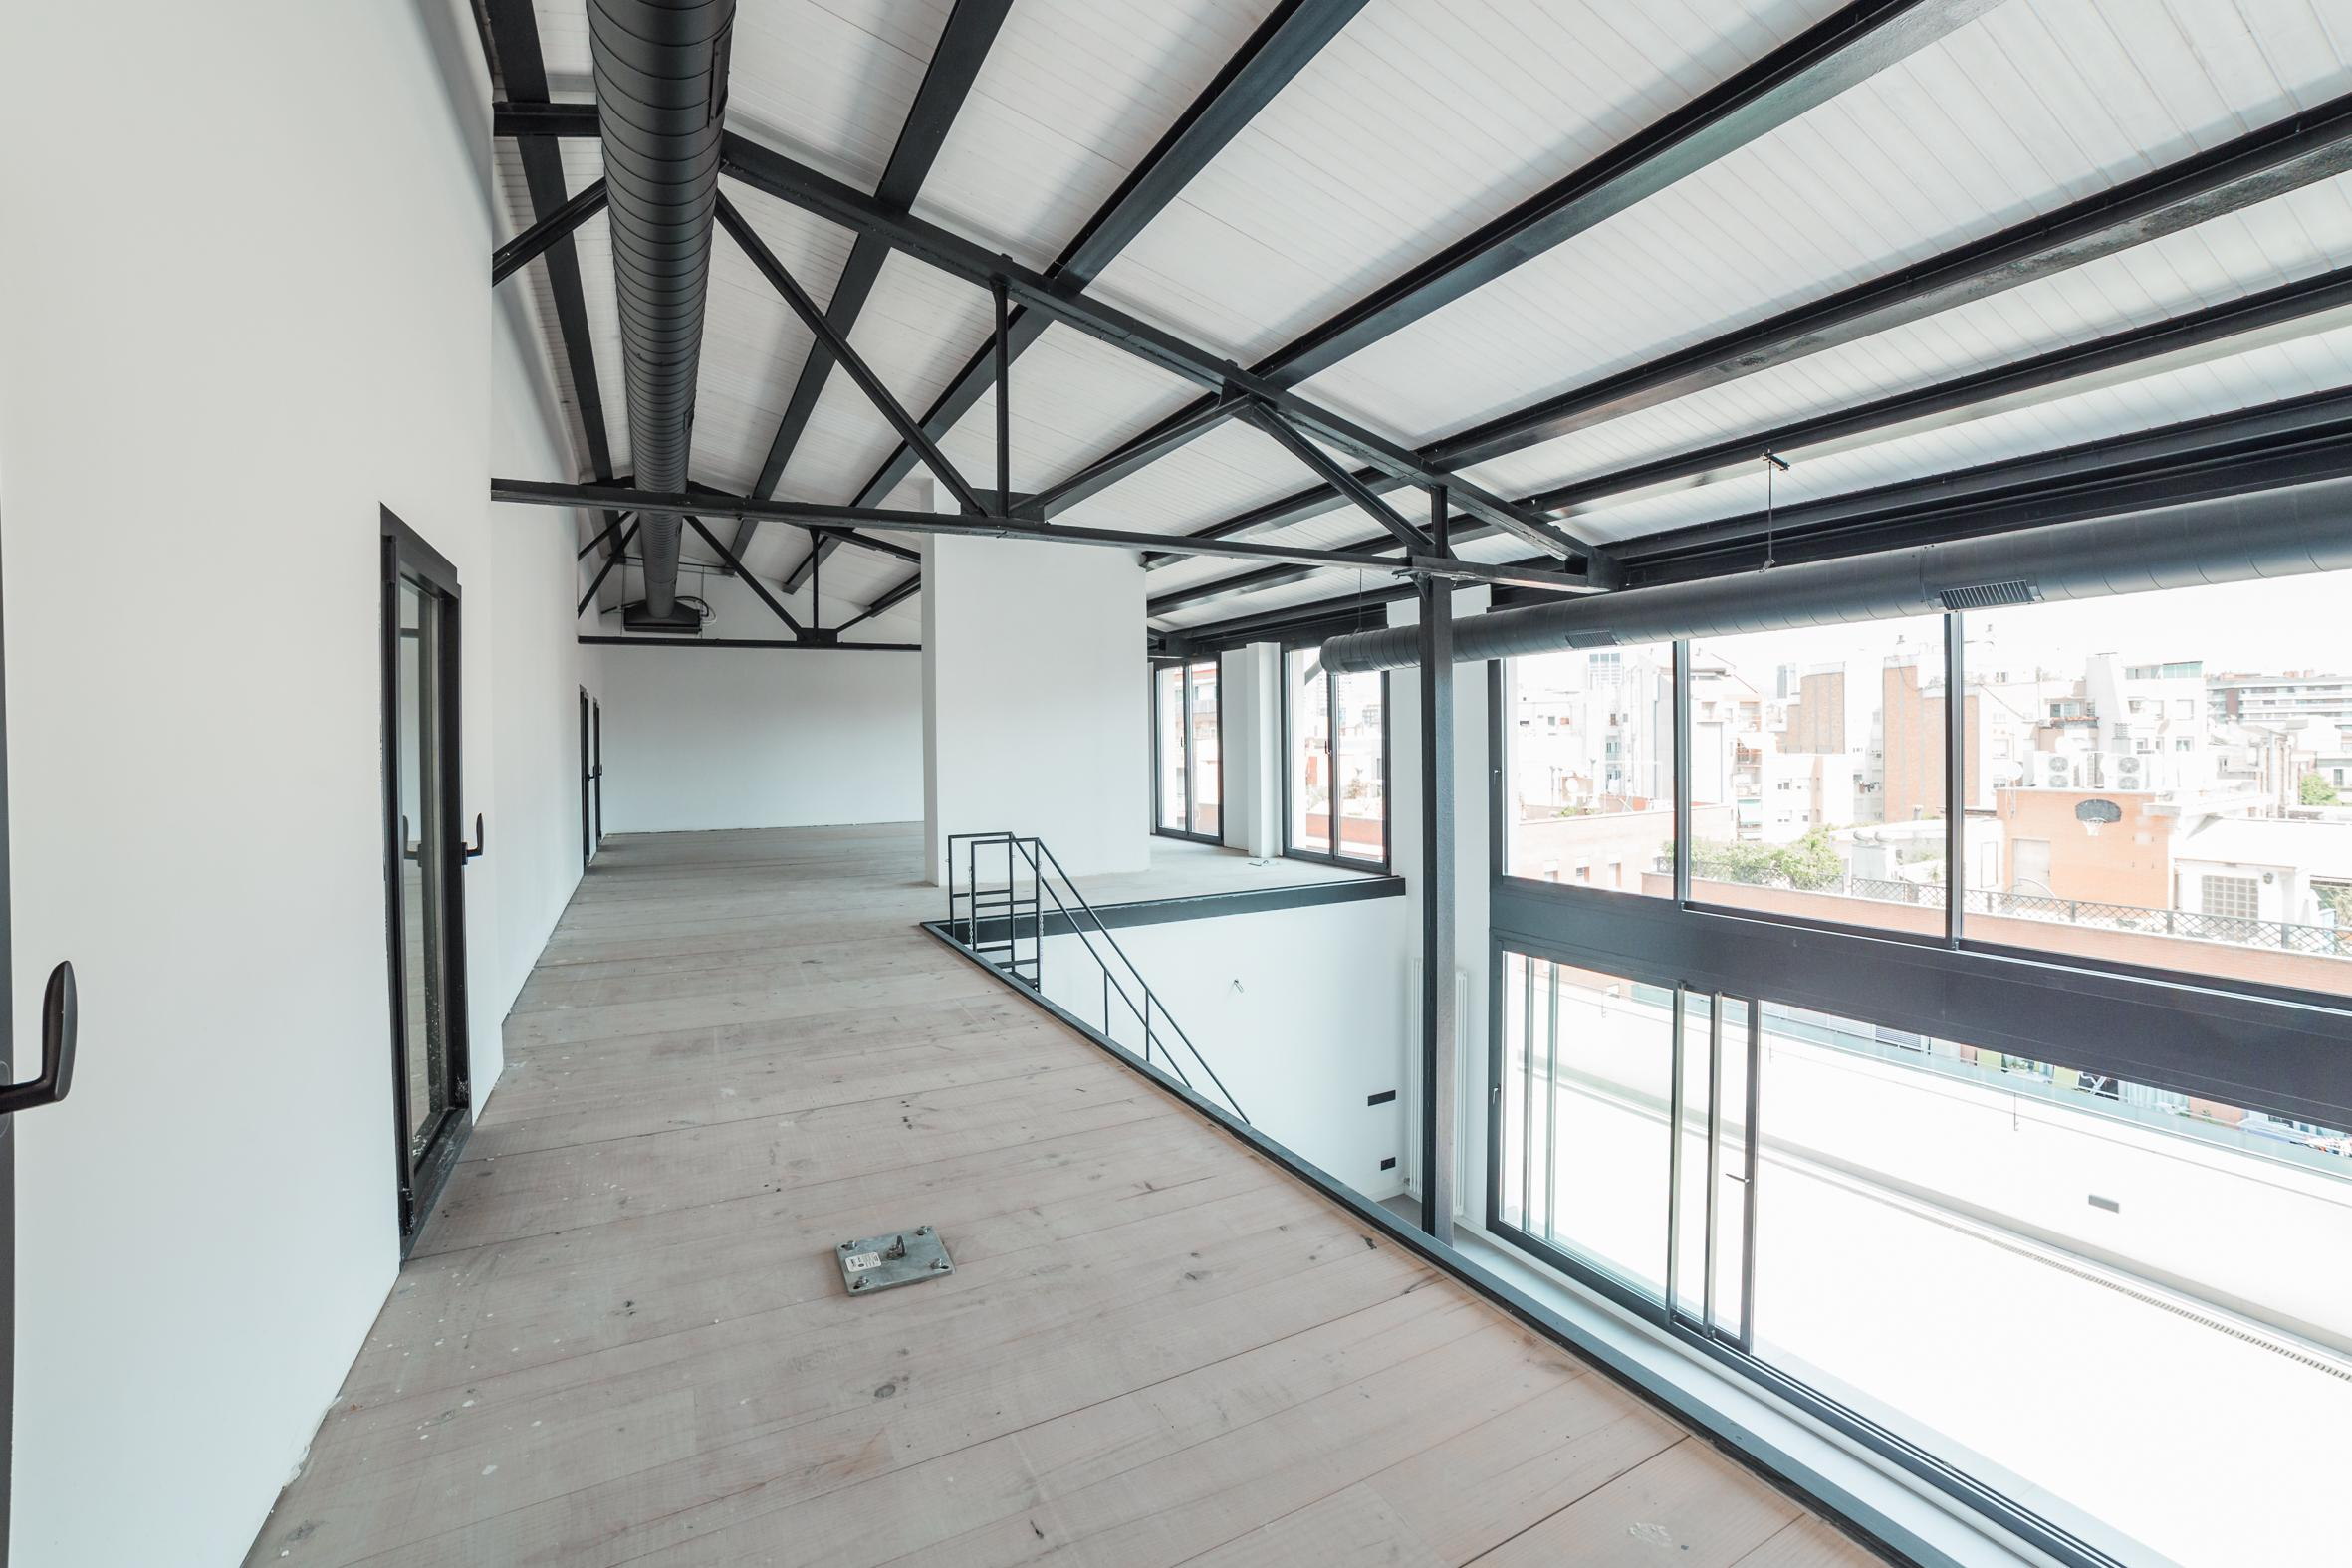 251675 Penthouse for sale in Les Corts, Les Corts 19